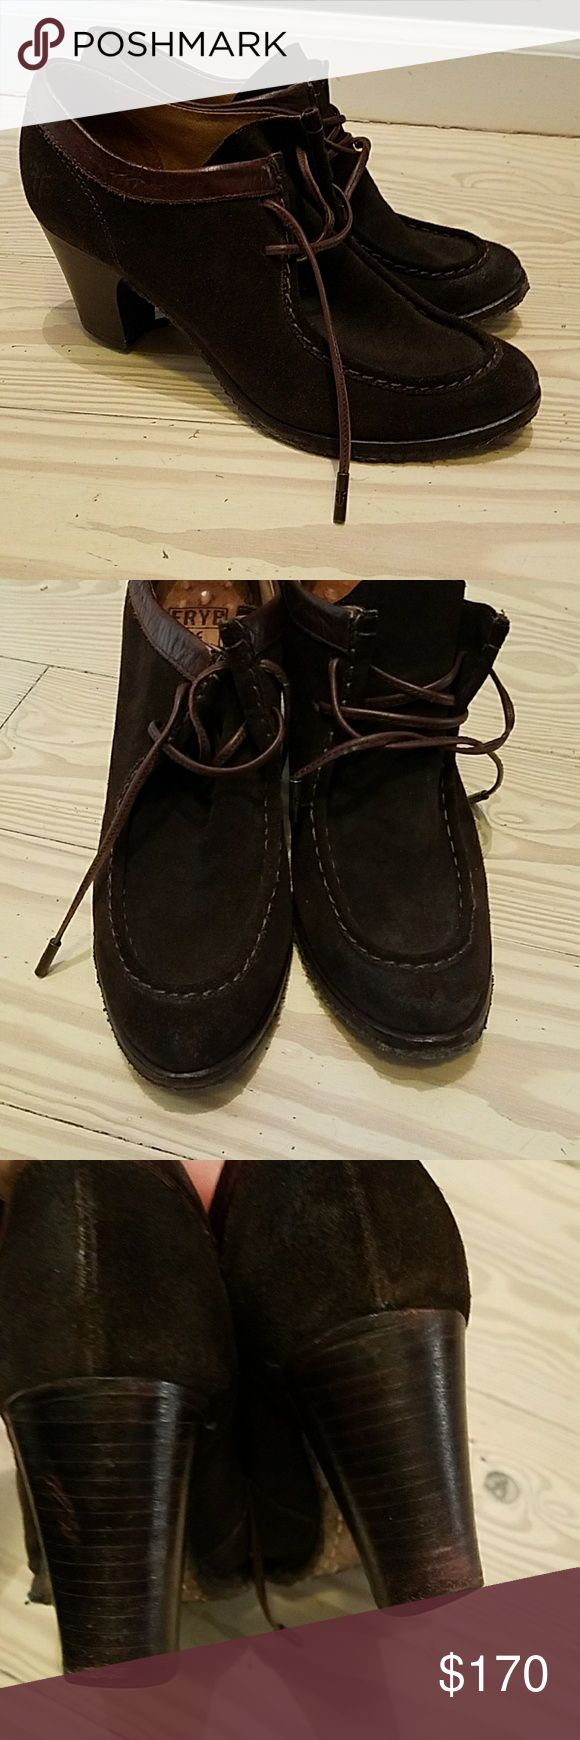 FRYE  LACE UP BOOTIE ankle boots brown suede 8.5 Gently worn  Good condition  Brown sued  8.5 Frye Shoes Ankle Boots & Booties